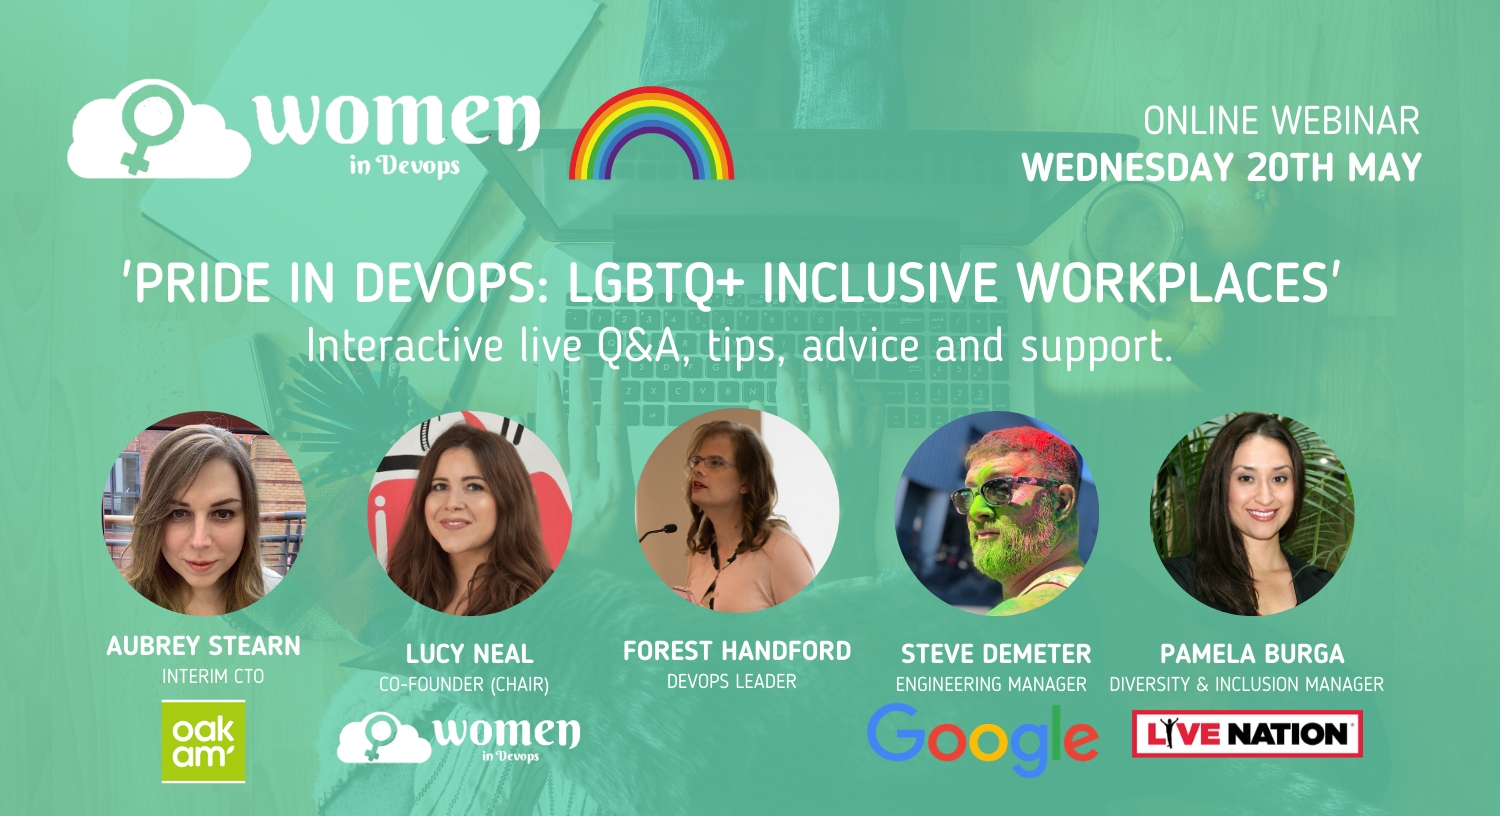 Webinar #3 - Pride in DevOps: LGBTQ+ Inclusive Workplaces